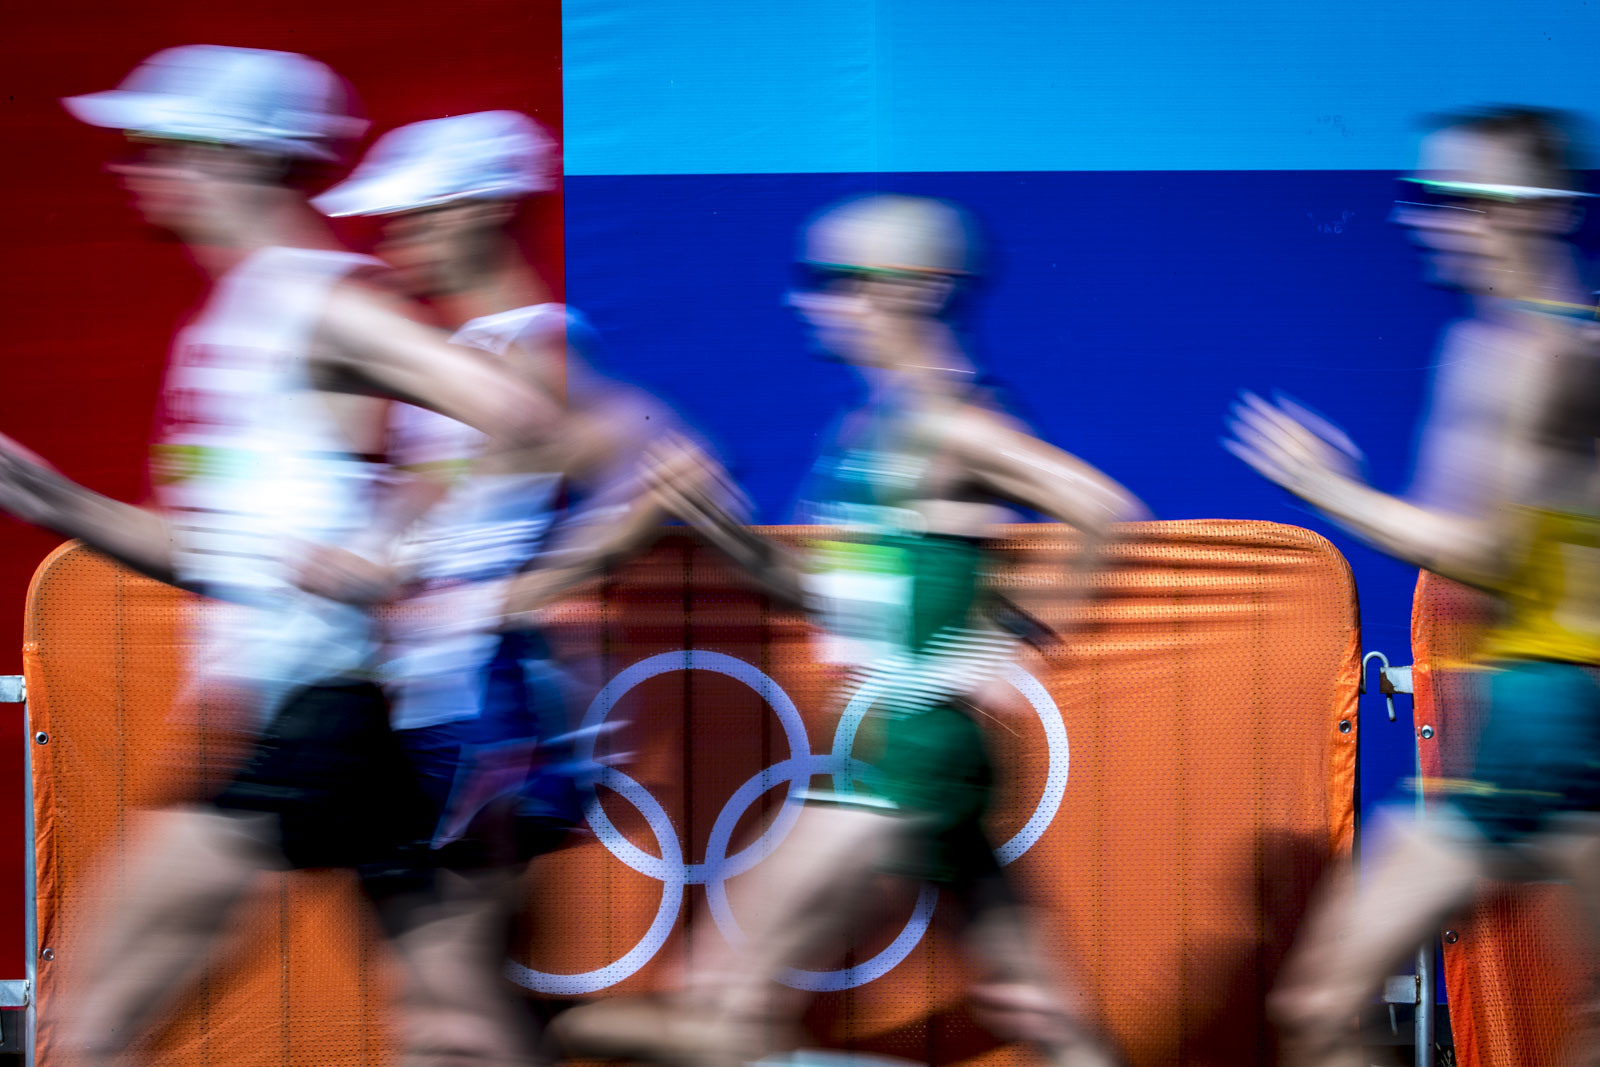 Team Canada's Evan Dunfee compete in the men's 50km race walk at Pontal Beach, Rio de Janeiro, Brazil, Thursday August 18, 2016.    COC Photo/David Jackson